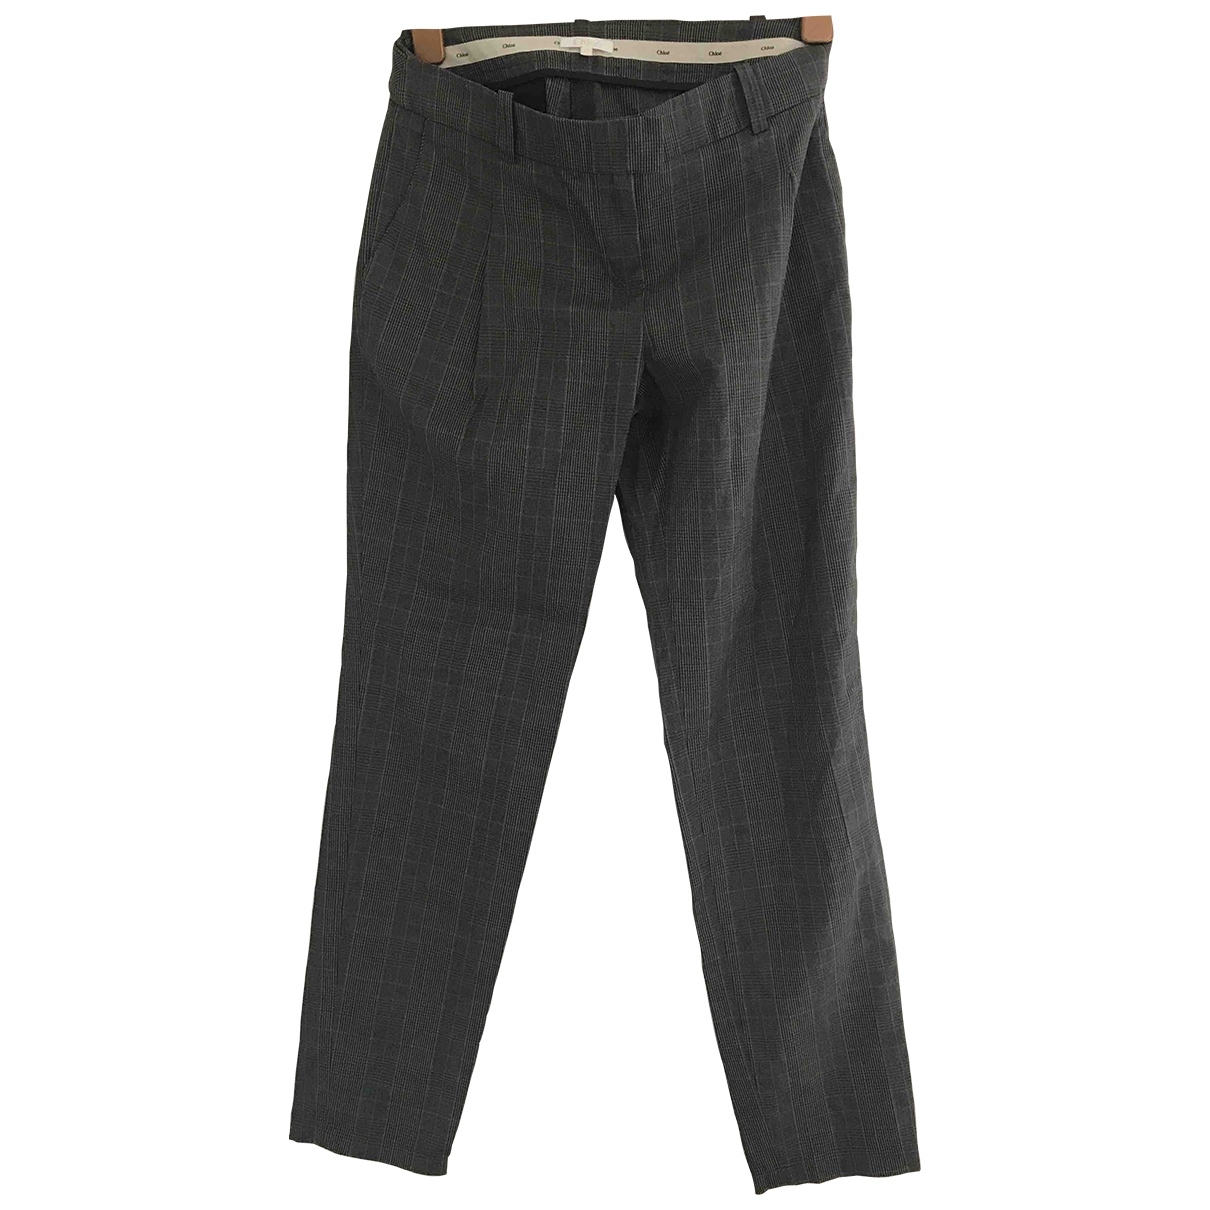 Chloé \N Cotton Trousers for Women One Size International